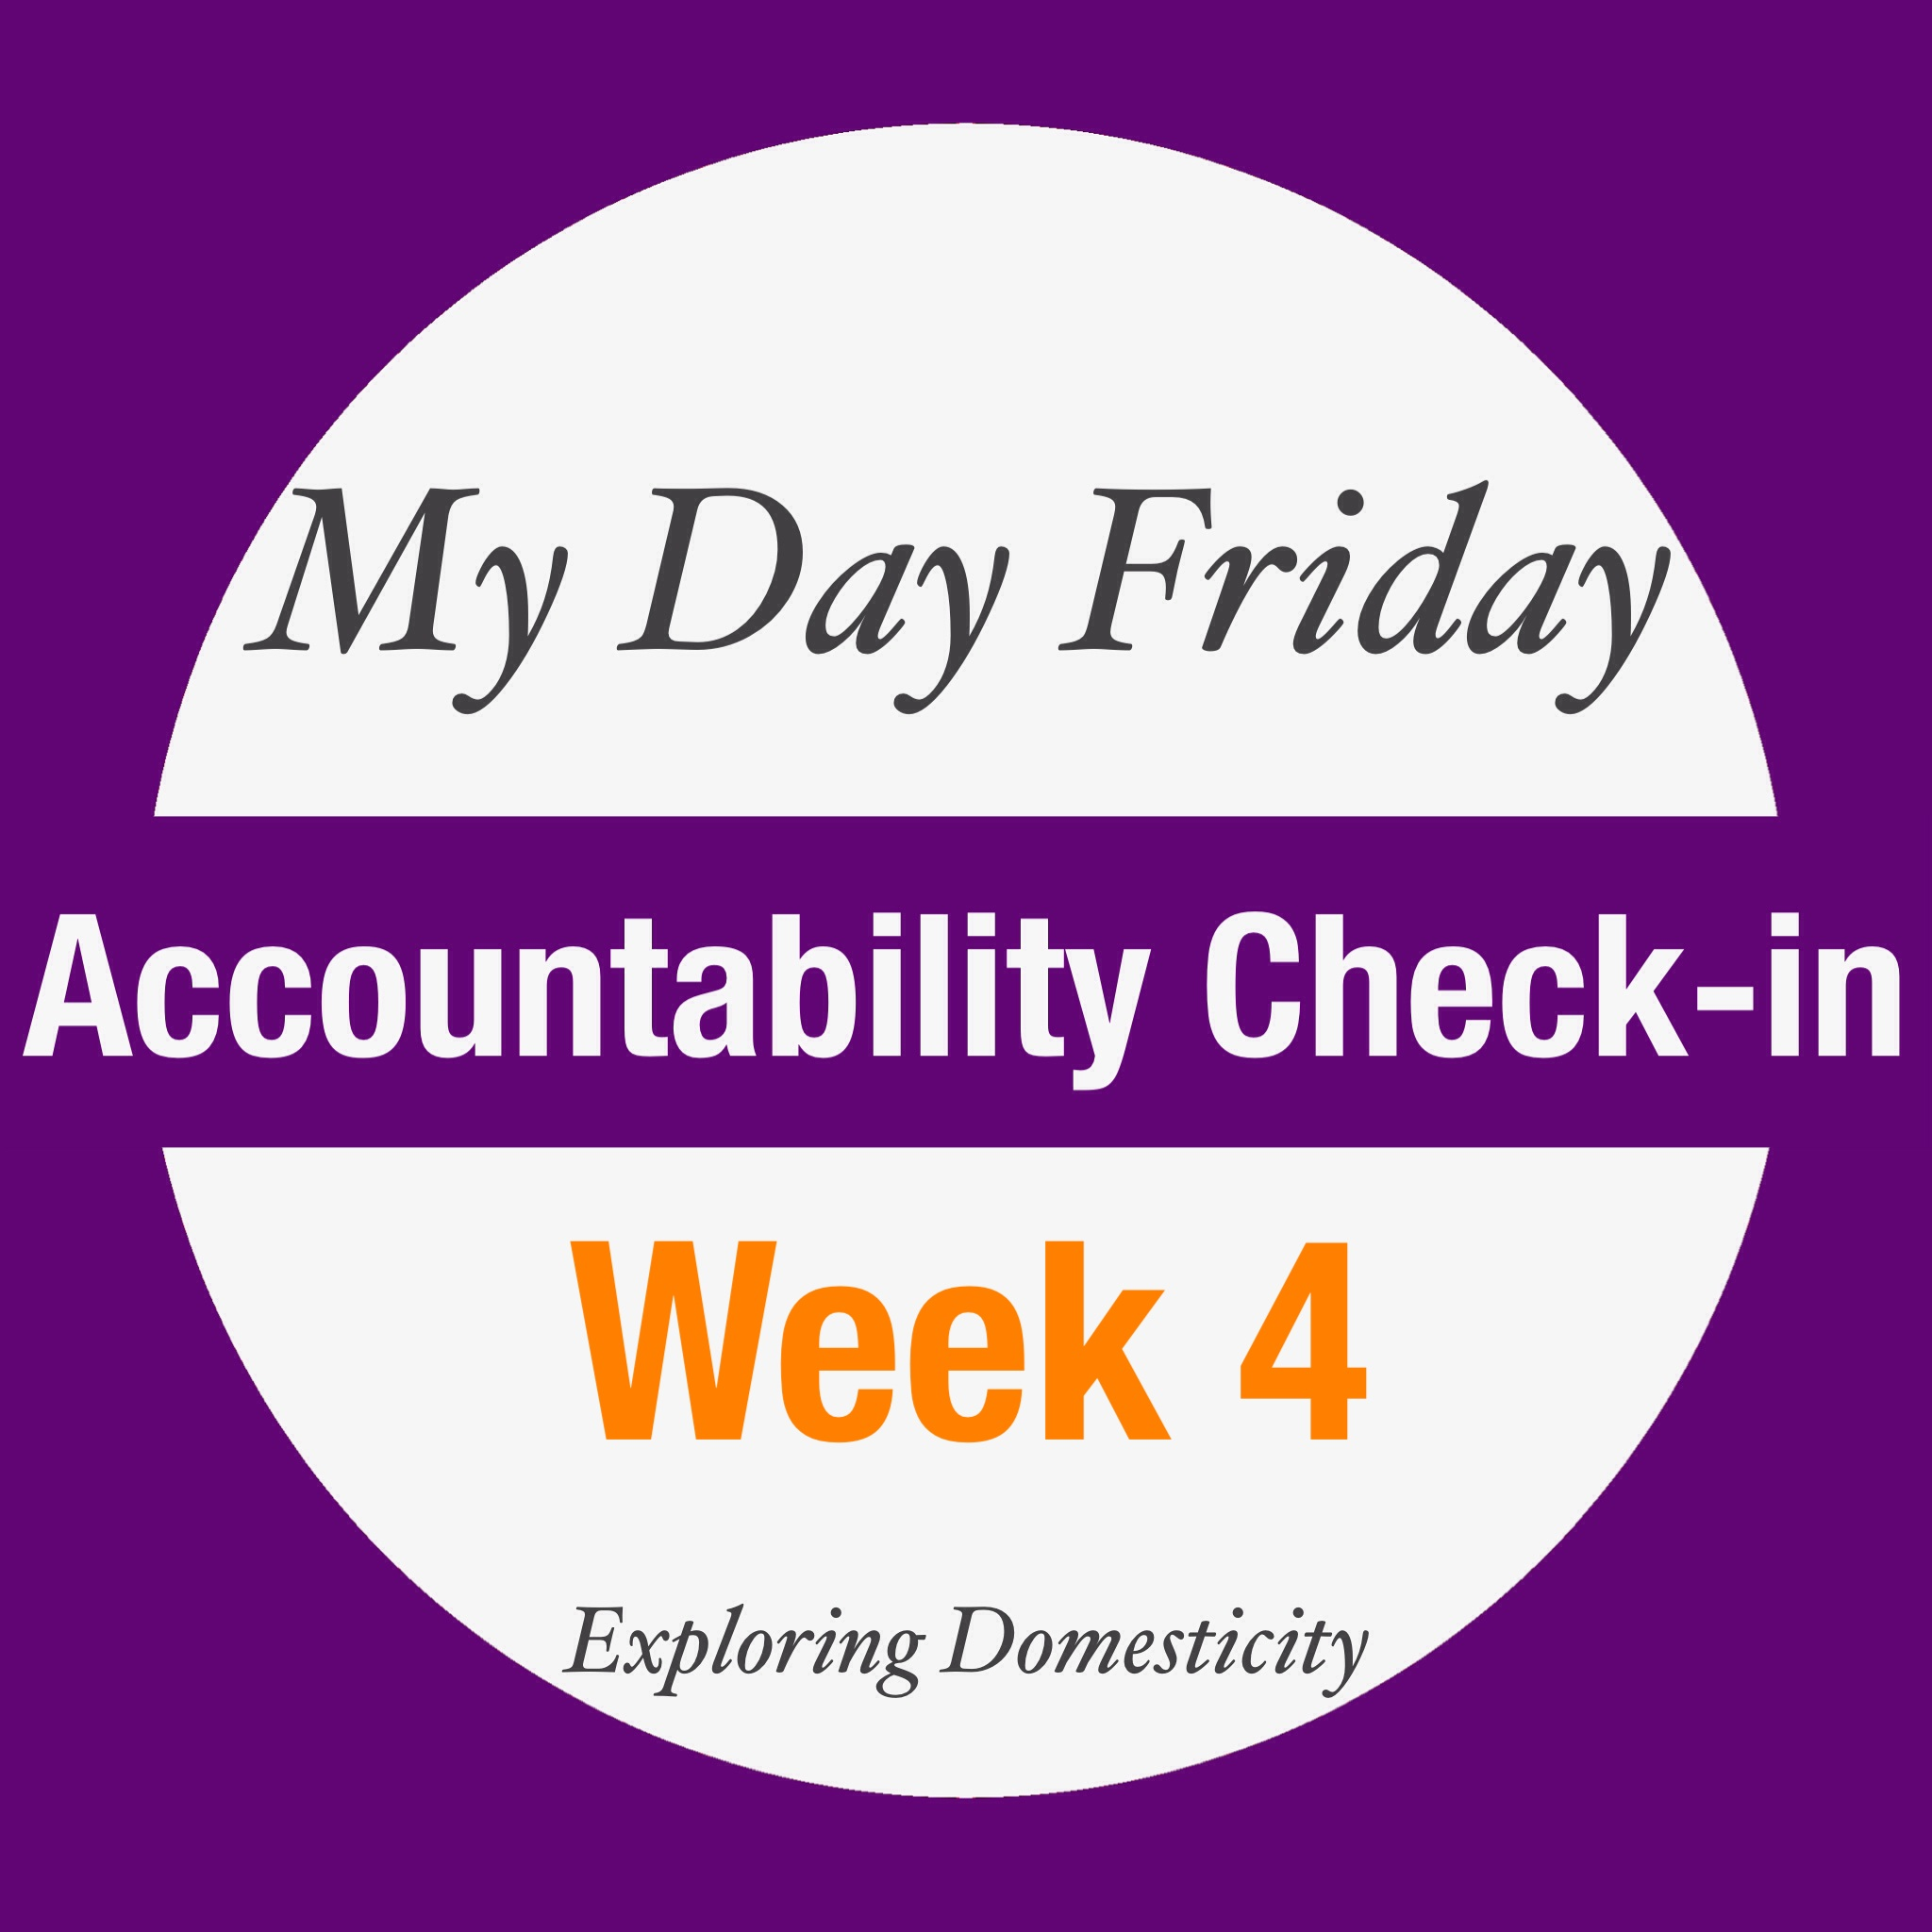 My Day Friday Accountability Check-in: week 4